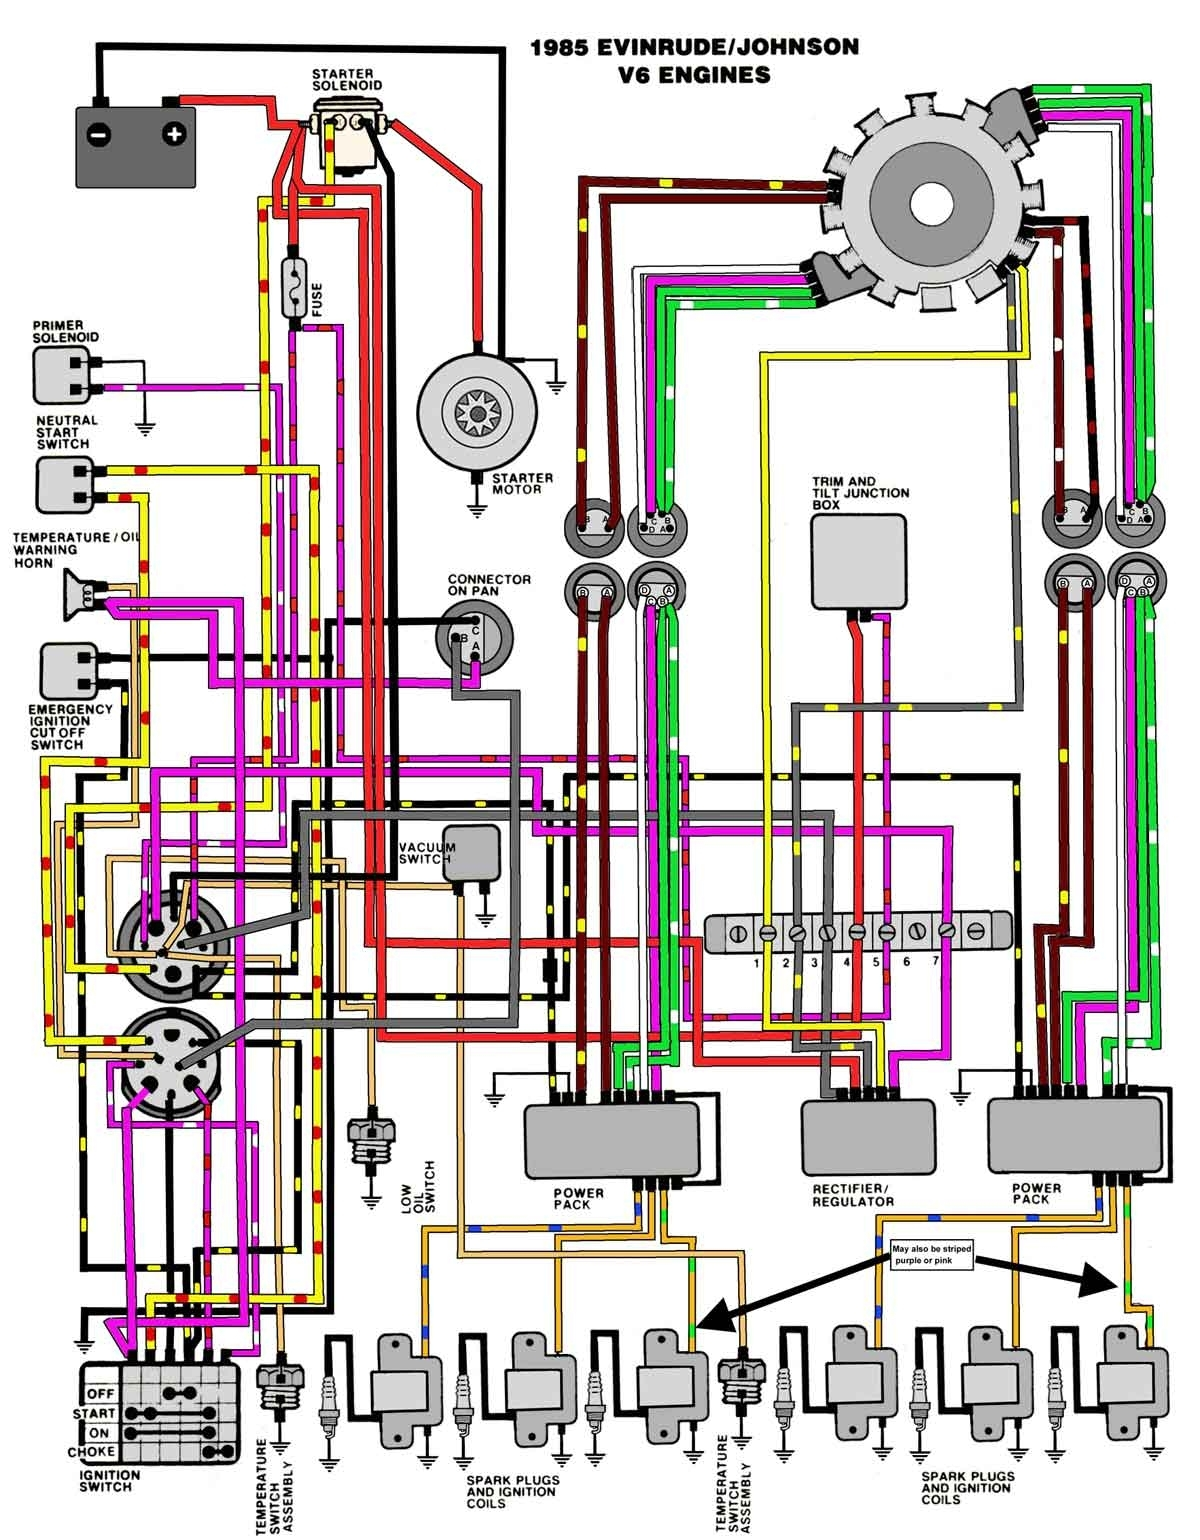 mastertech marine evinrude johnson outboard wiring diagrams within 76 evinrude wiring diagram?resize\\\=665%2C853\\\&ssl\\\=1 johnson 20 hp wiring diagram johnson download wirning diagrams outboard motor wiring diagram at nearapp.co